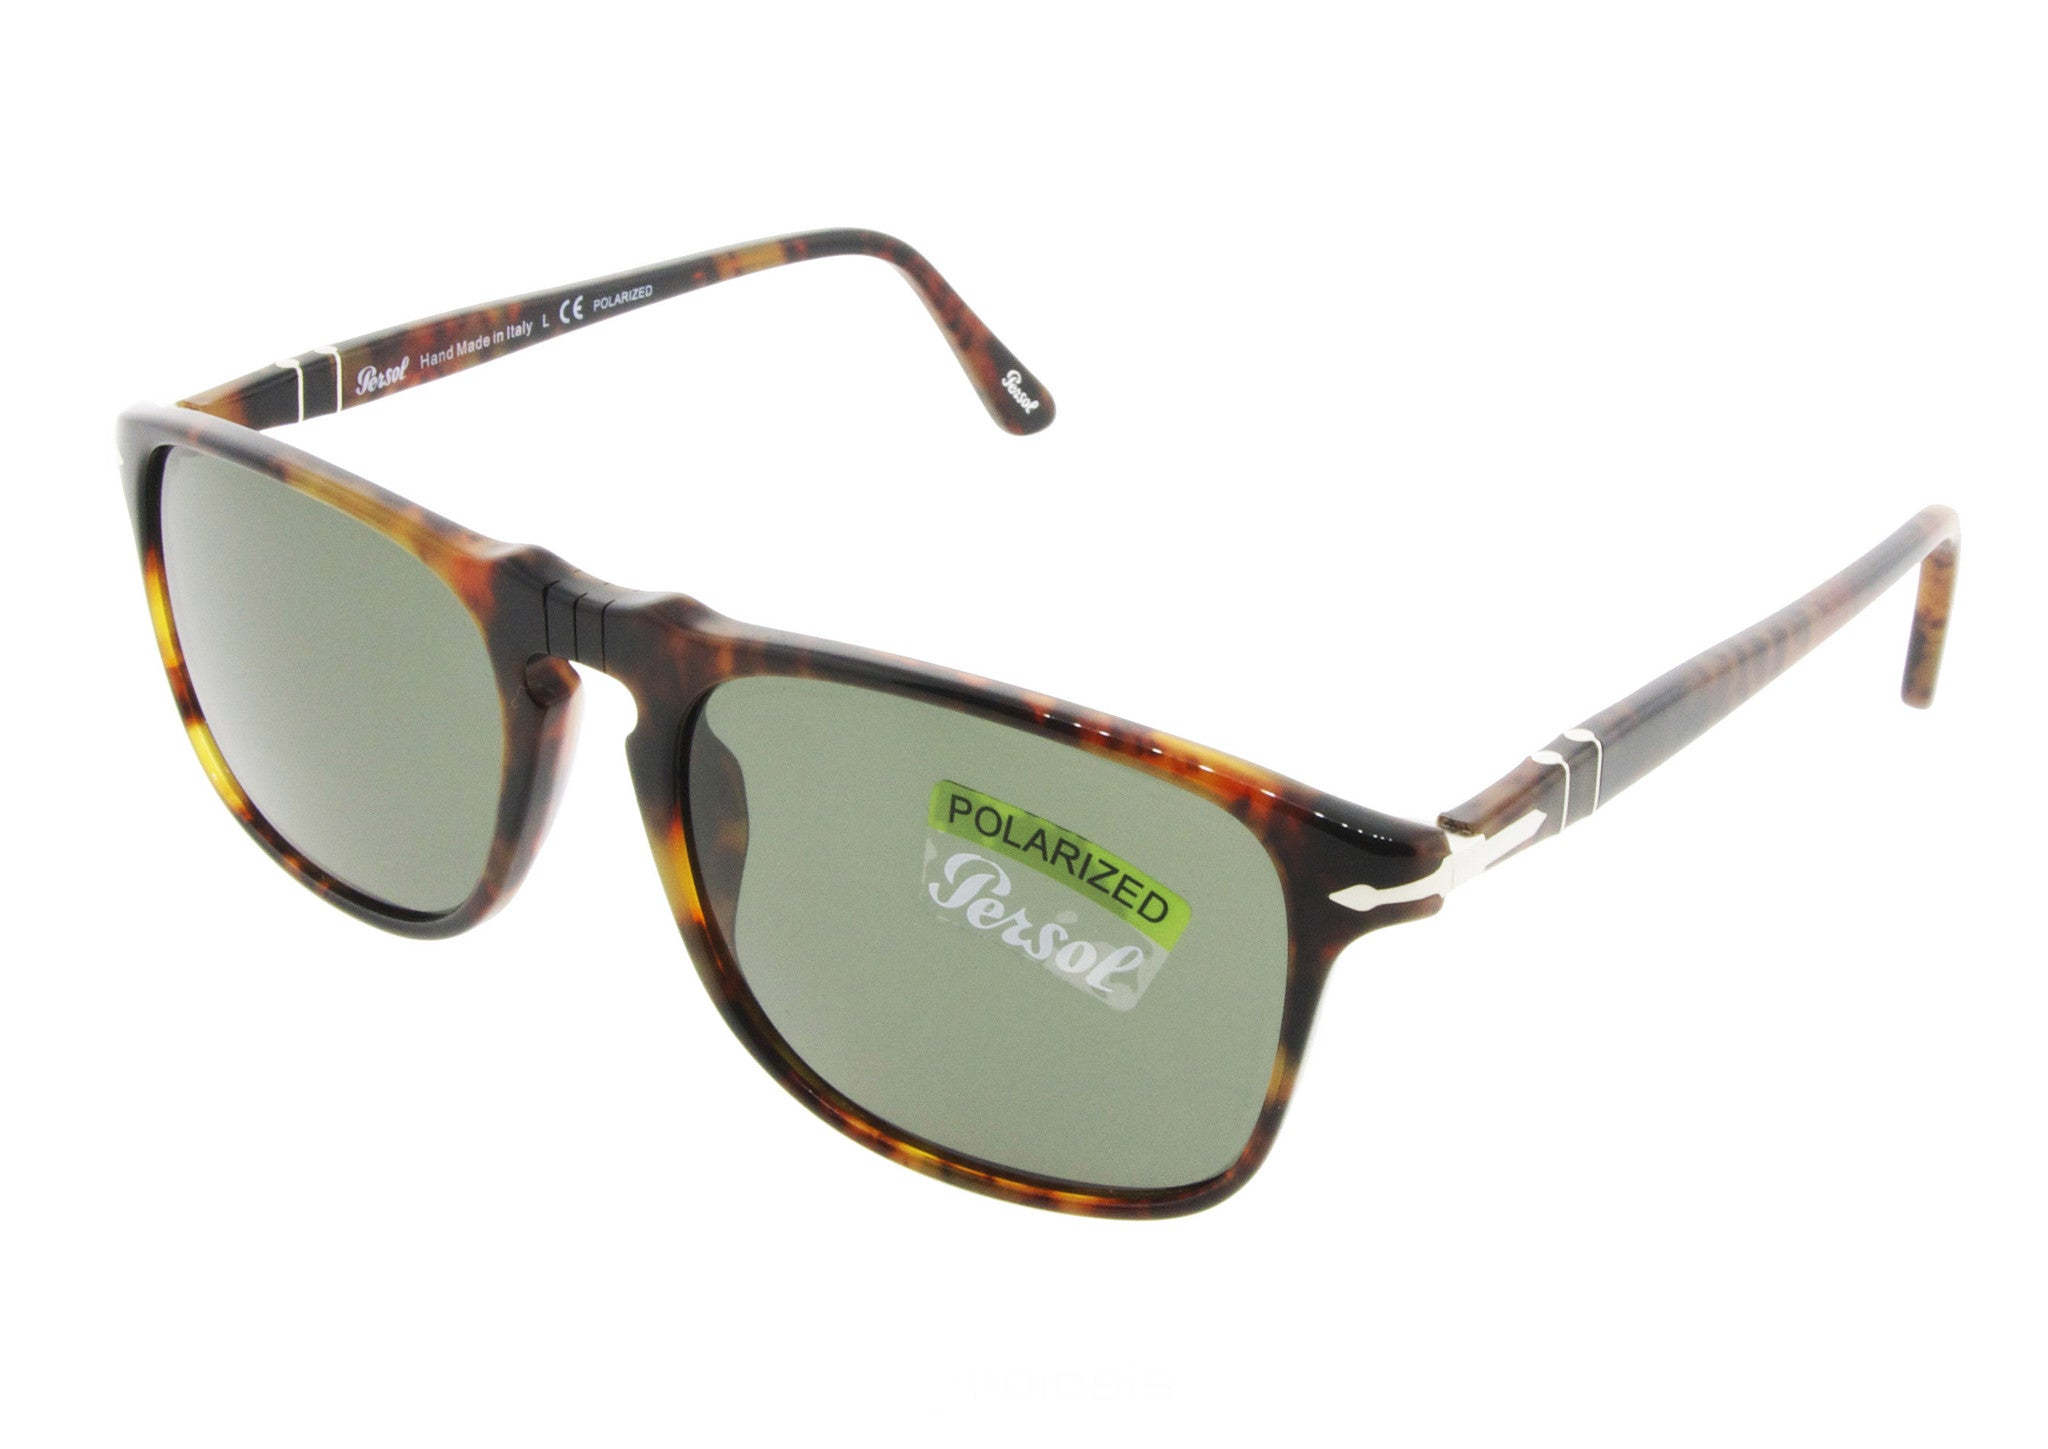 d51abe05899 ... Persol Sunglasses 3059S 108 58 Caffe with Polarized Green Lenses Size  54 ...